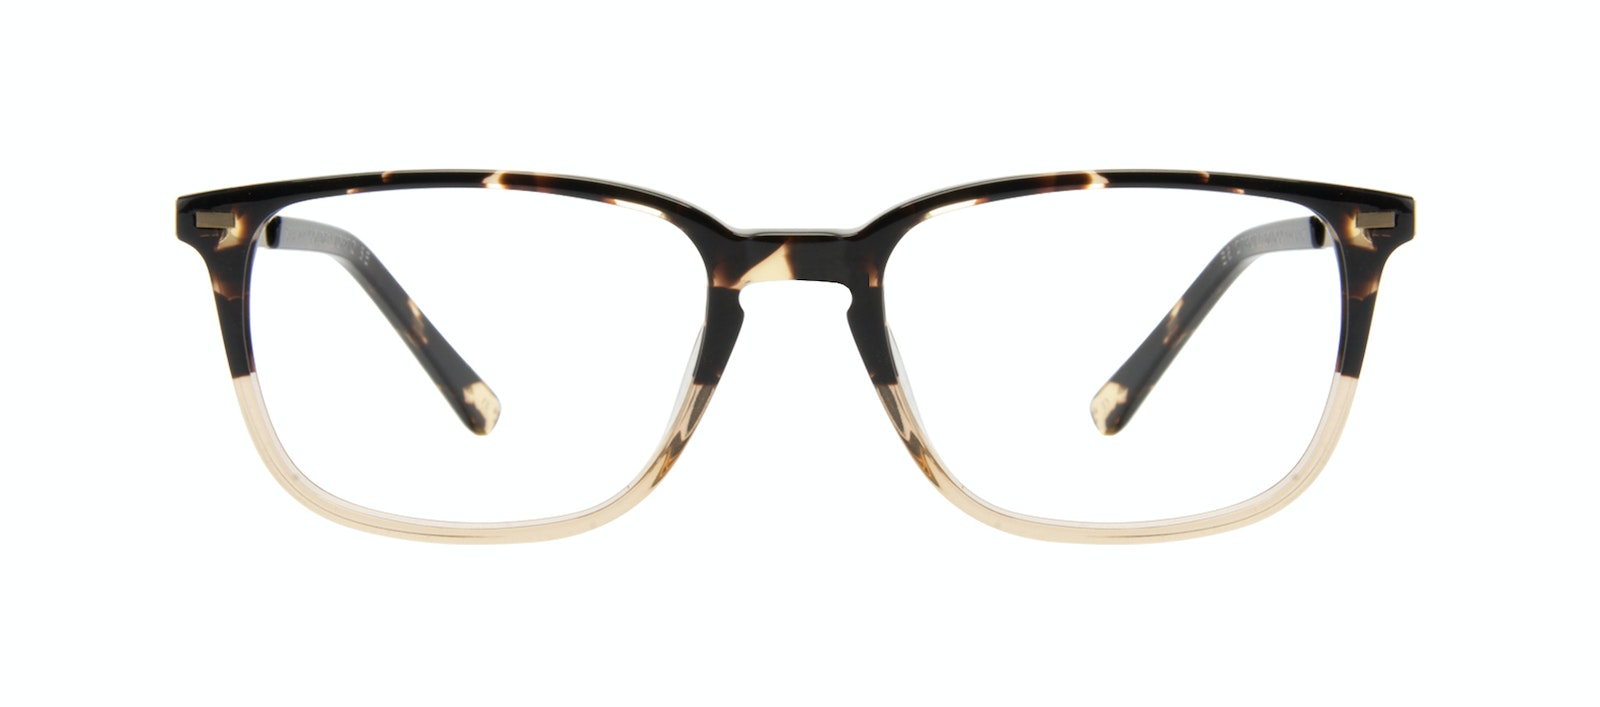 Affordable Fashion Glasses Rectangle Eyeglasses Men Sharp Golden Tortoise Front